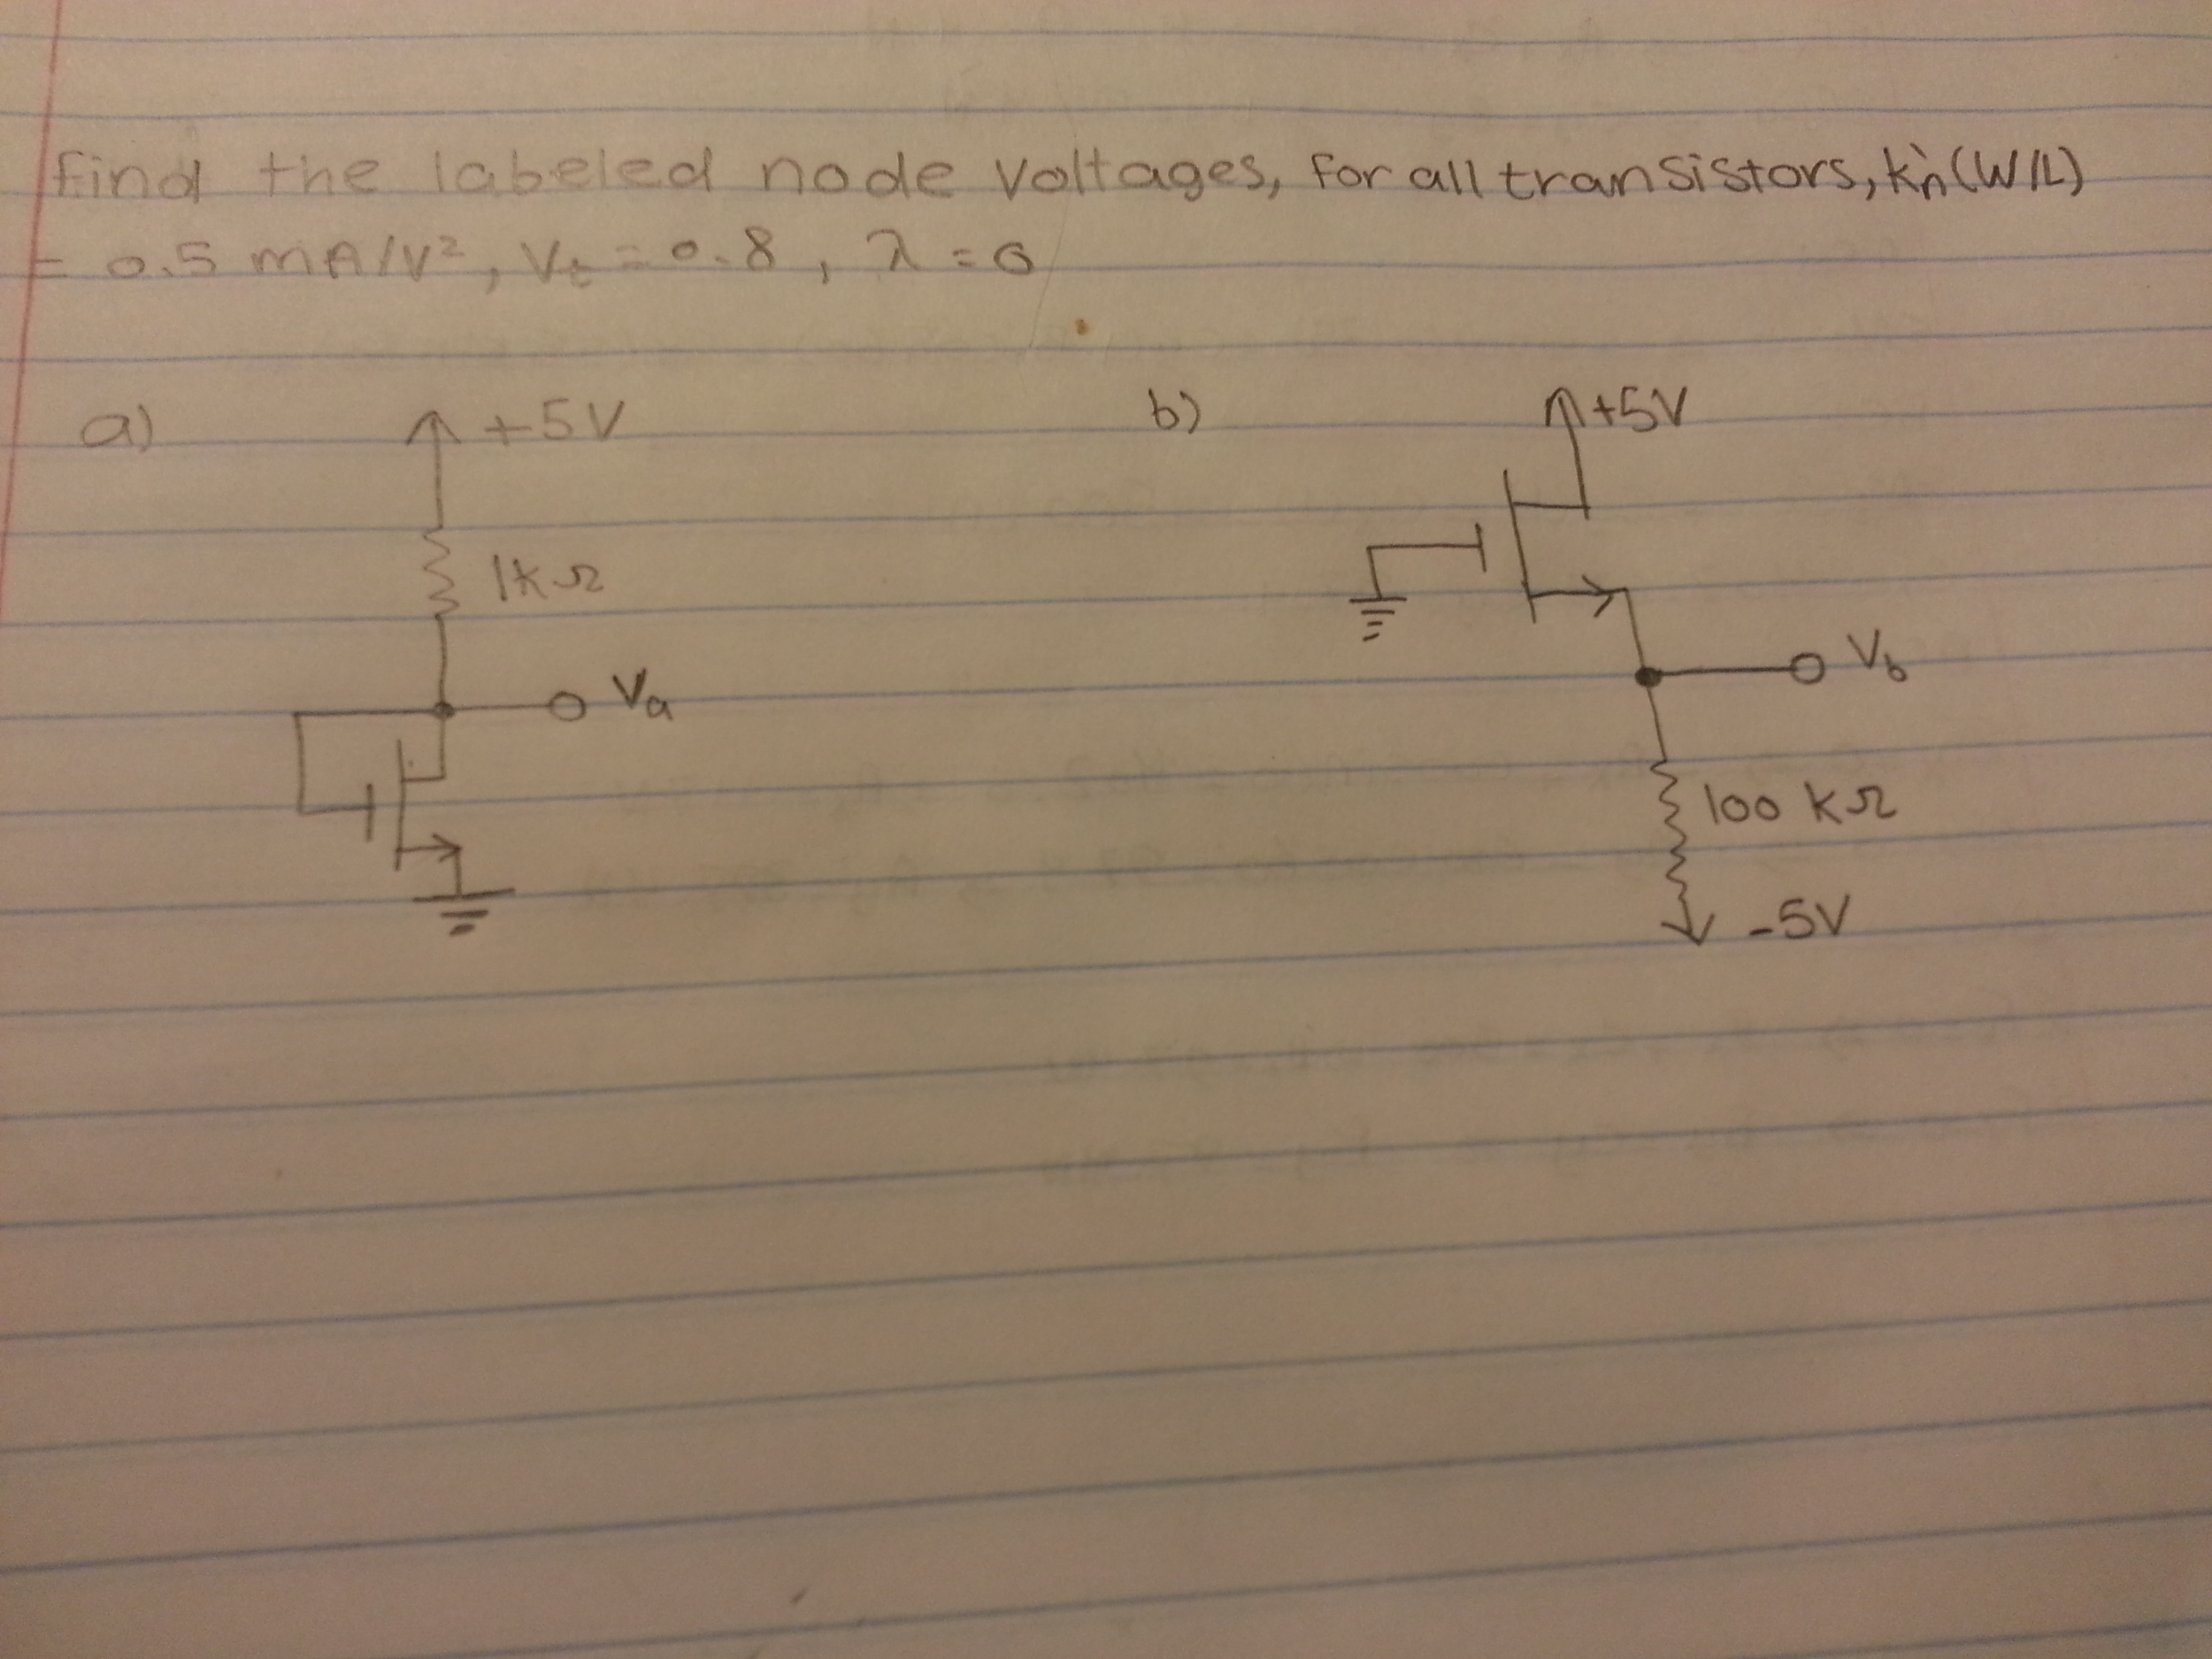 Find the labeled node voltages, for all transistor